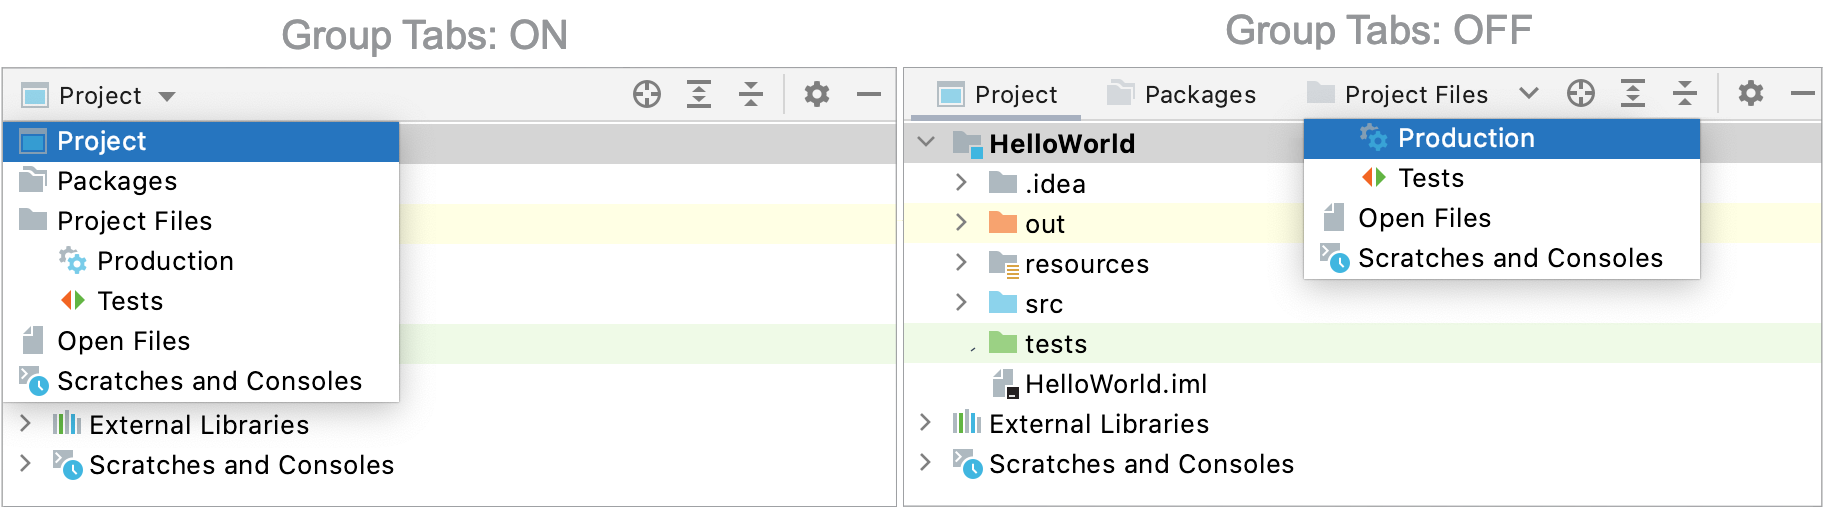 IntelliJIDEA: choosing a view in the Project tool window